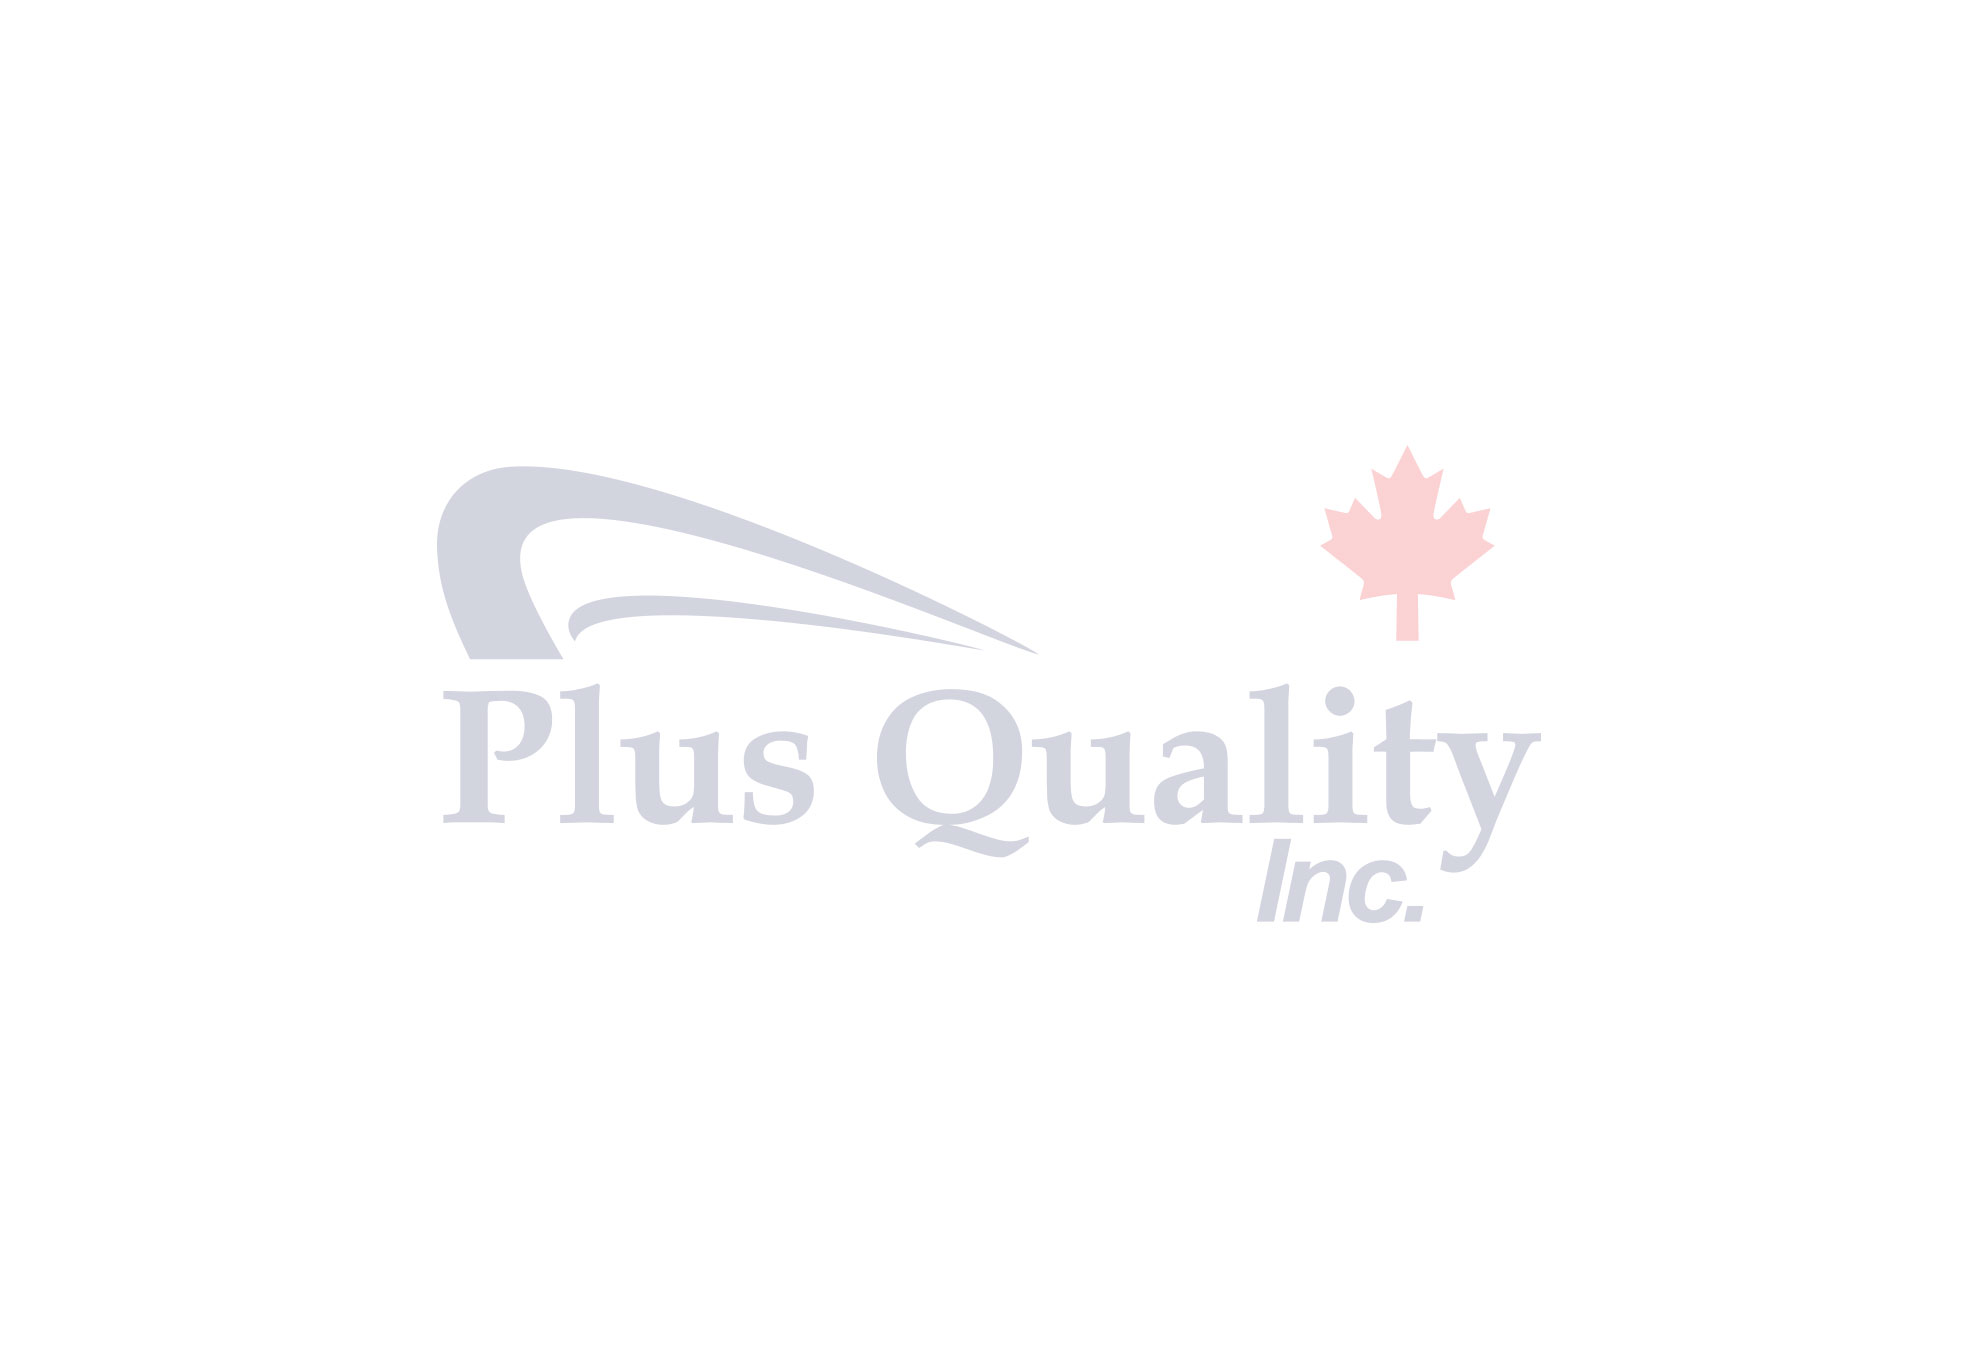 A Plus Quality Inc.